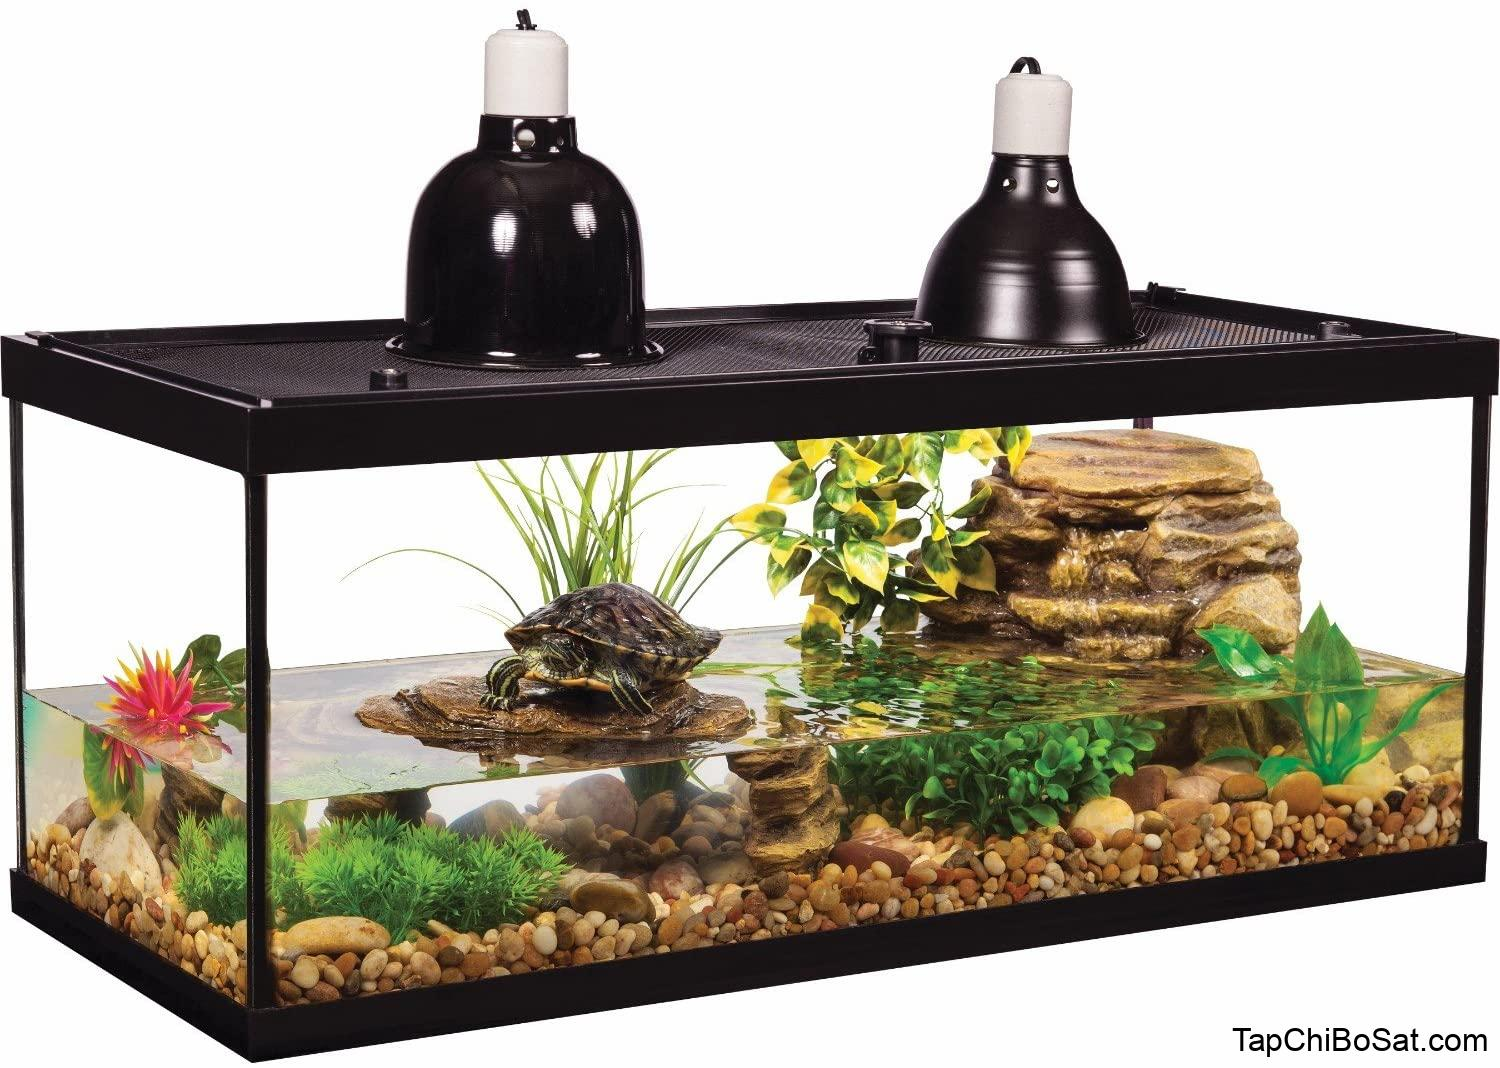 Amazon.com: Tetra Aquatic Turtle Deluxe Kit 20 Gallons, aquarium With  Filter And Heating Lamps, 30 IN (NV33230): Pet Supplies